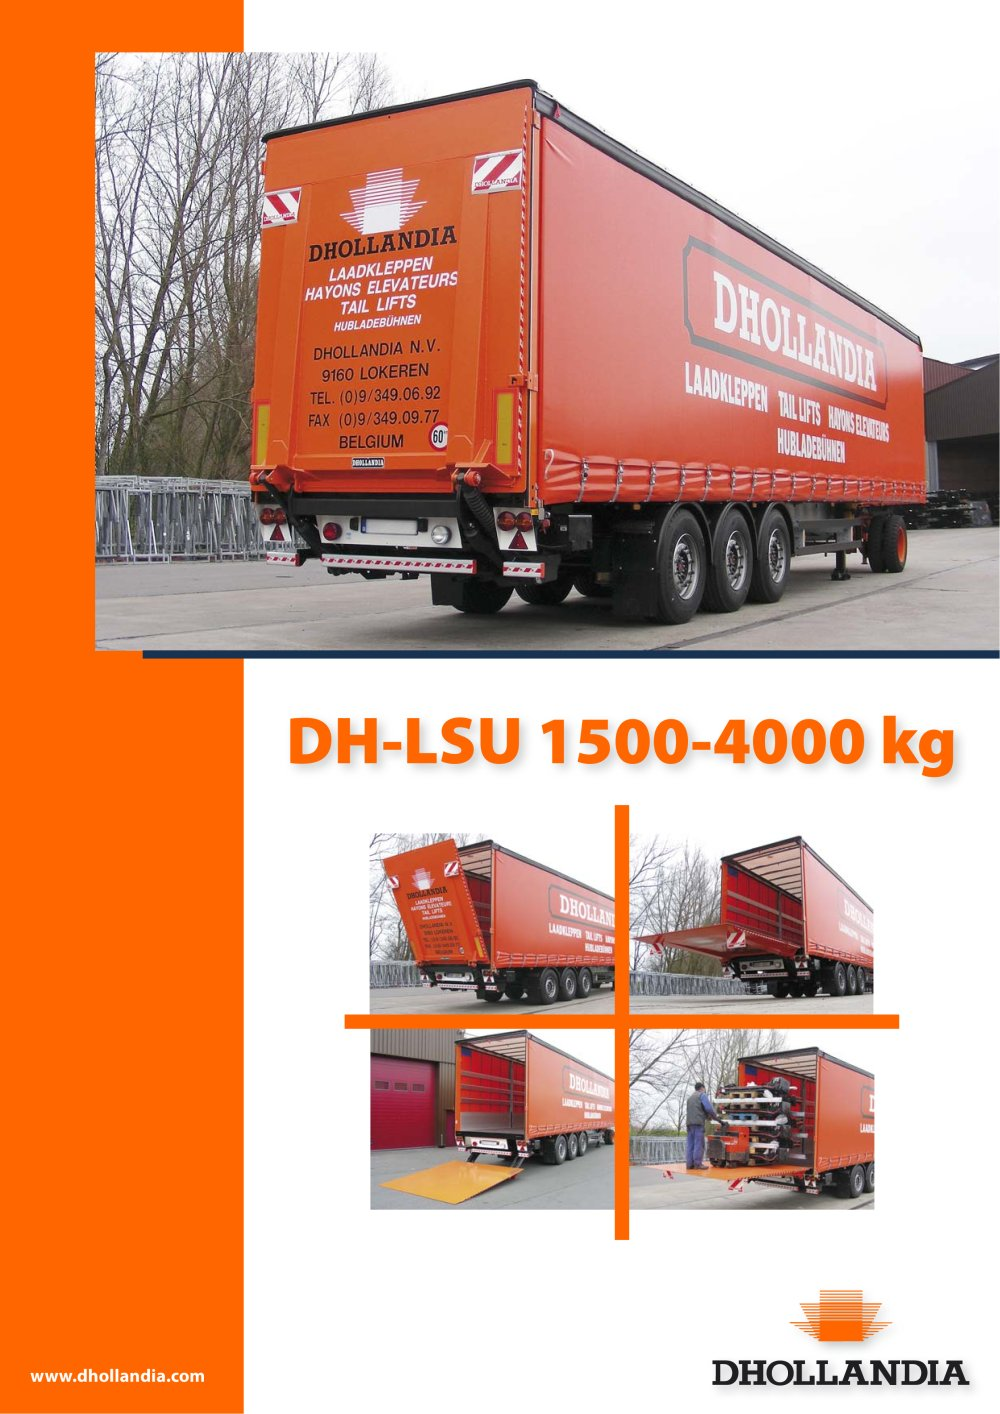 Dhollandia Tail Lift Wiring Diagram 35 Images Ricon Diagrams Cantilever Lifts Dh Lm41 118431 1b Pdf Catalogue Technical